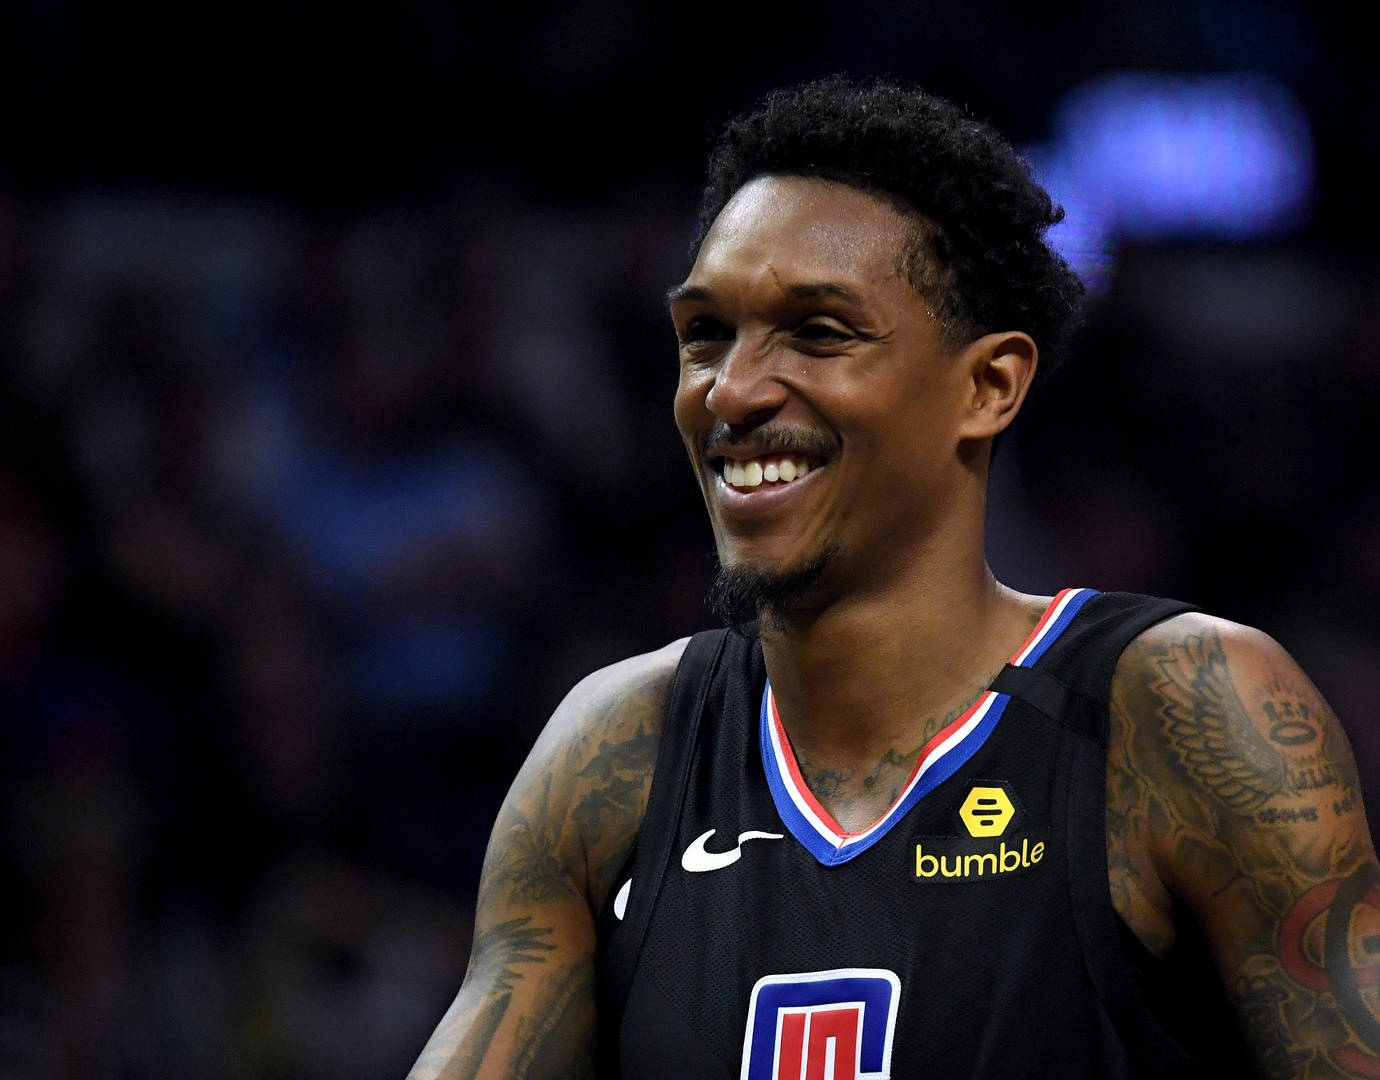 Lou Williams fires back on Twitter at Kendrick Perkins for criticism